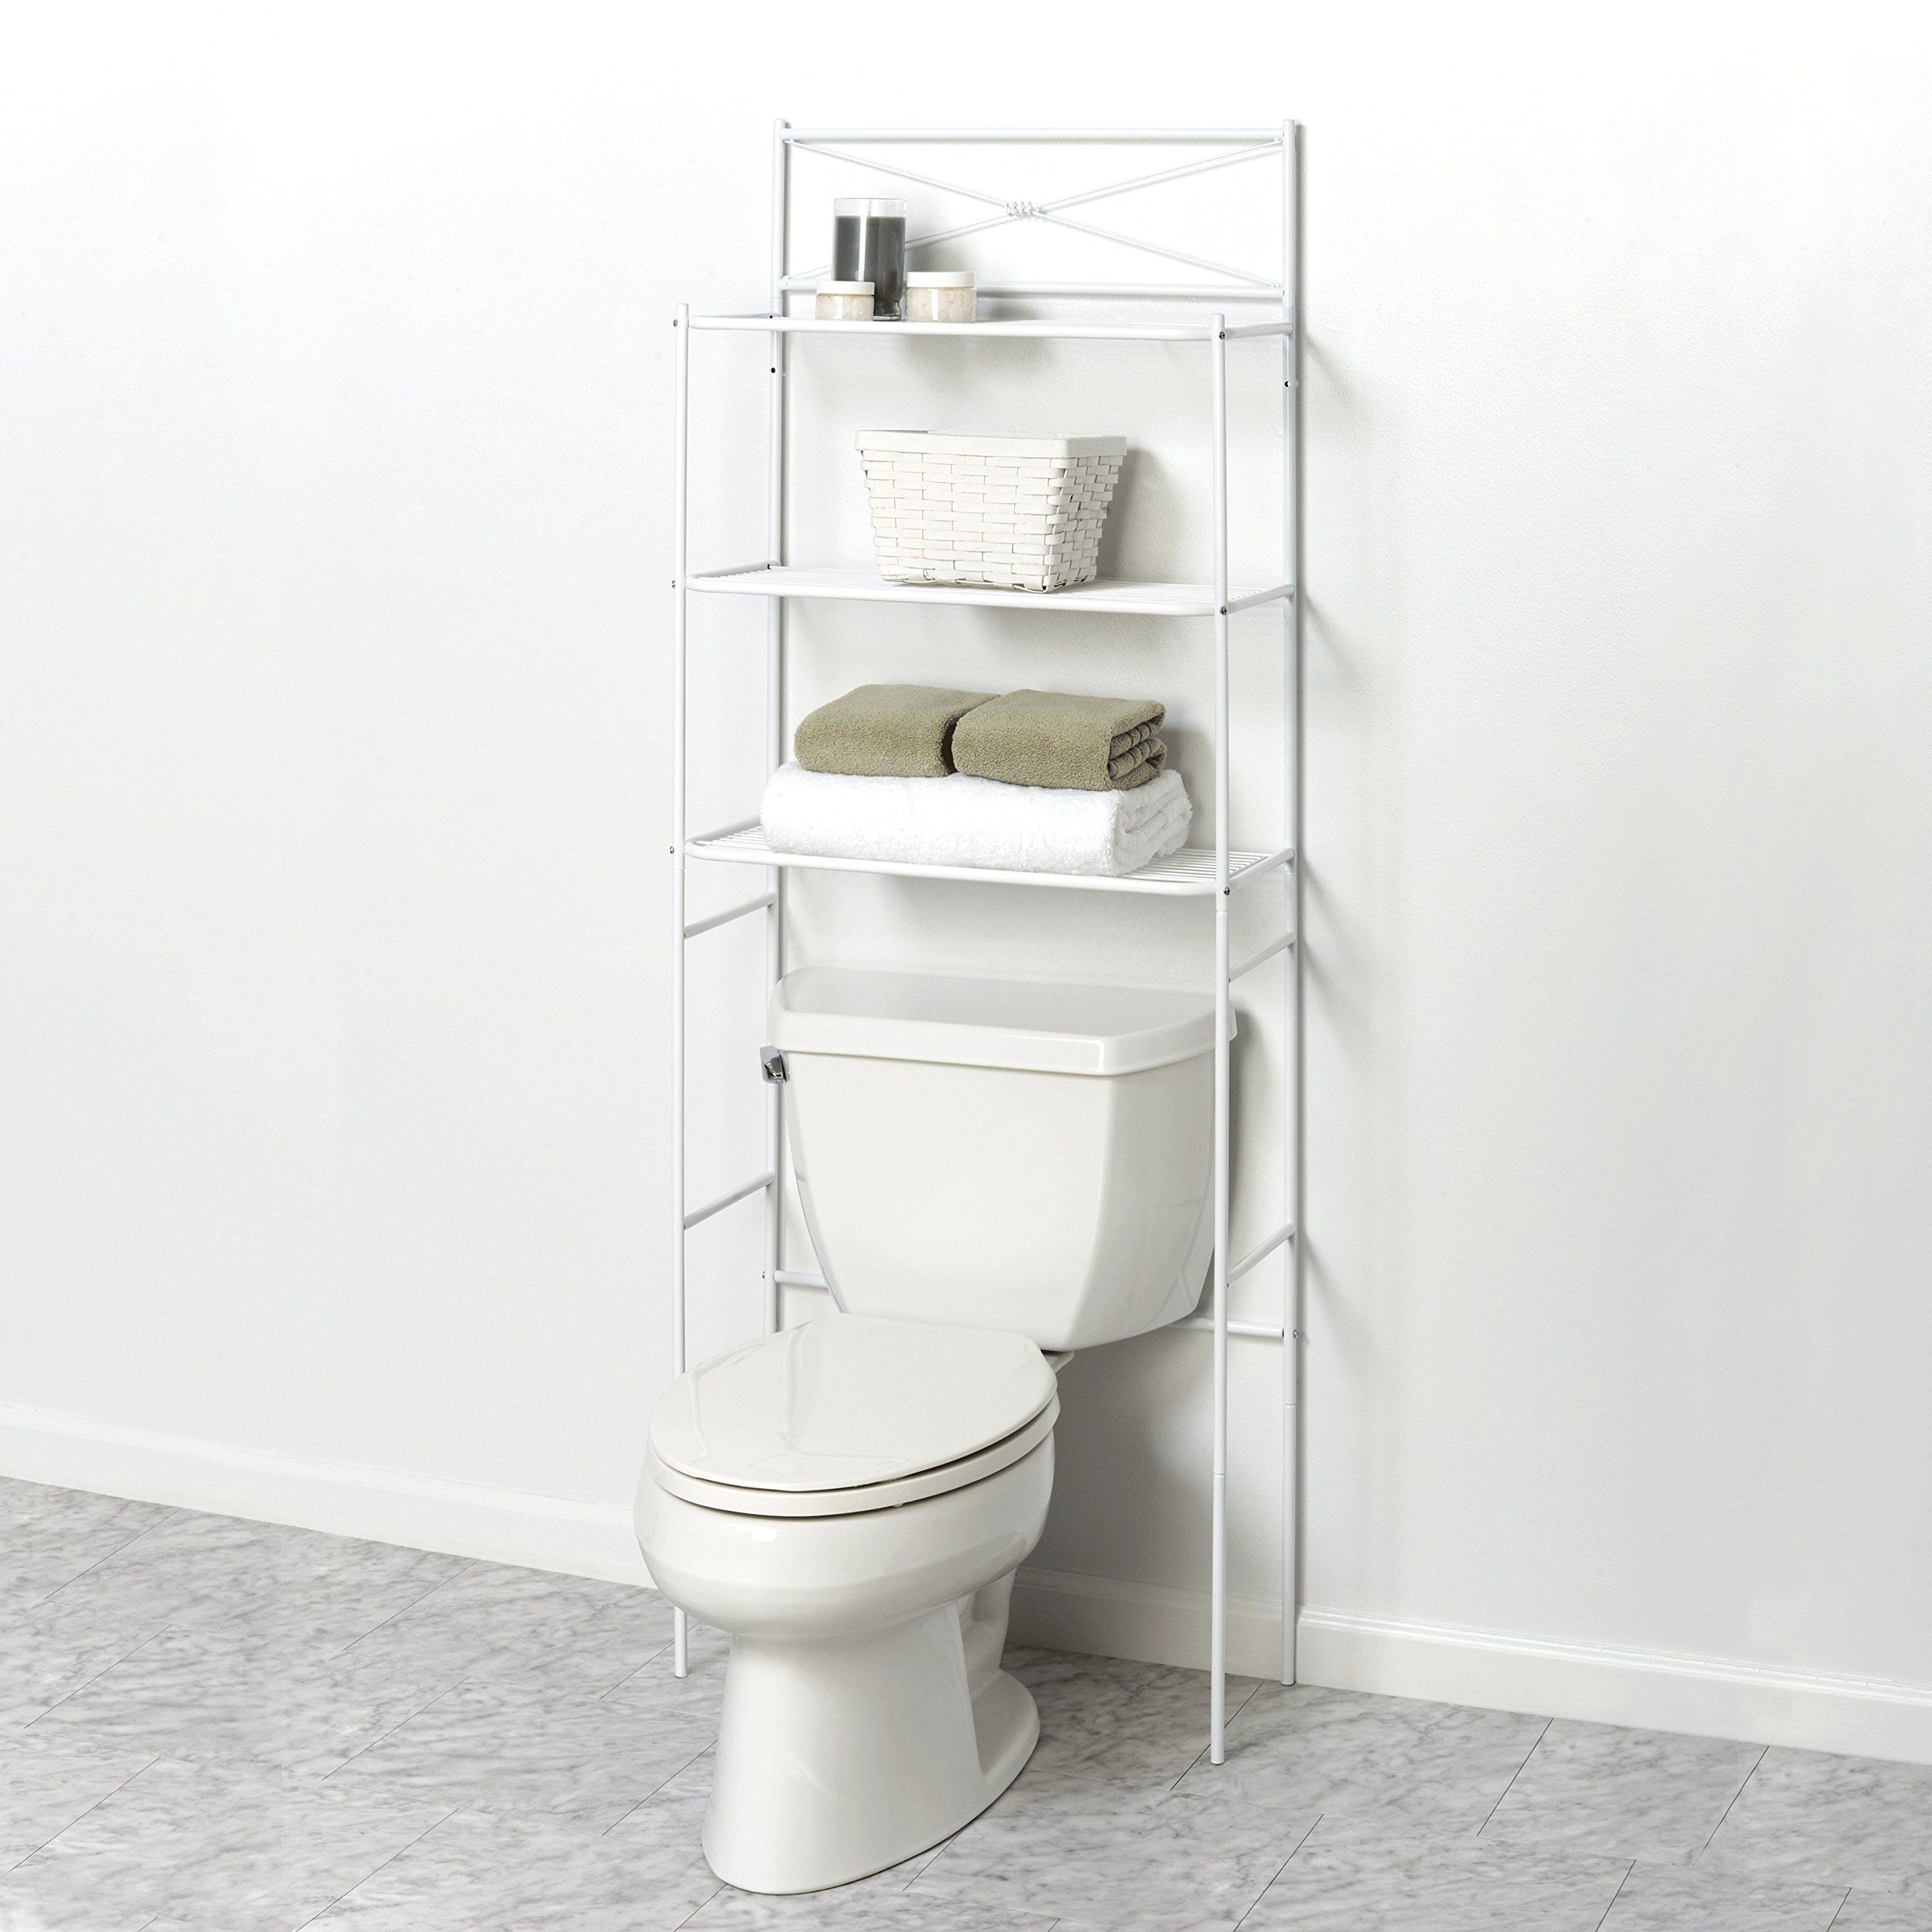 Over The Toilet Bathroom Spacesaver Shelves Storage Towel Shelf Organizer  White